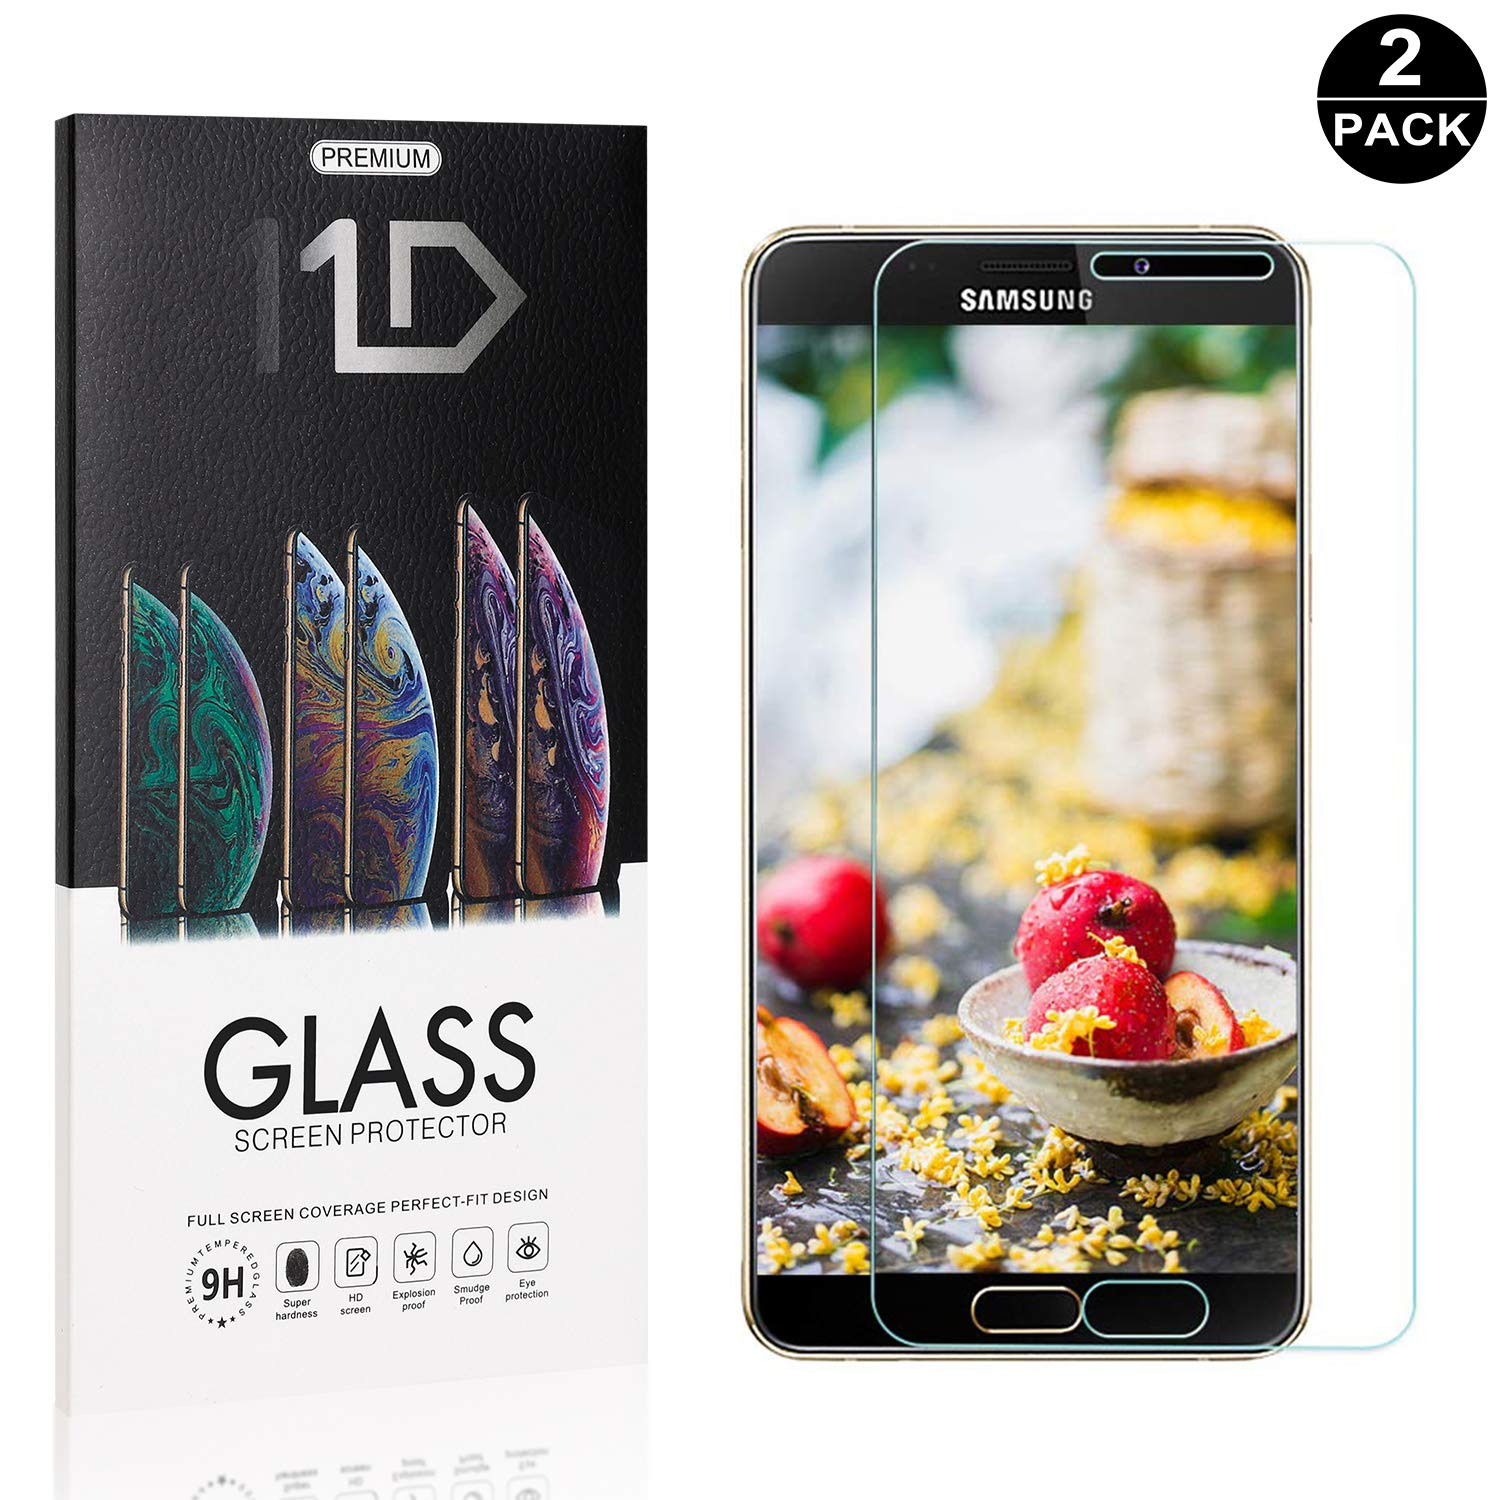 2 Pack UNEXTATI HD Clear Tempered Glass Screen Protector for Samsung Galaxy A9 Star Galaxy A9 Star Screen Protector